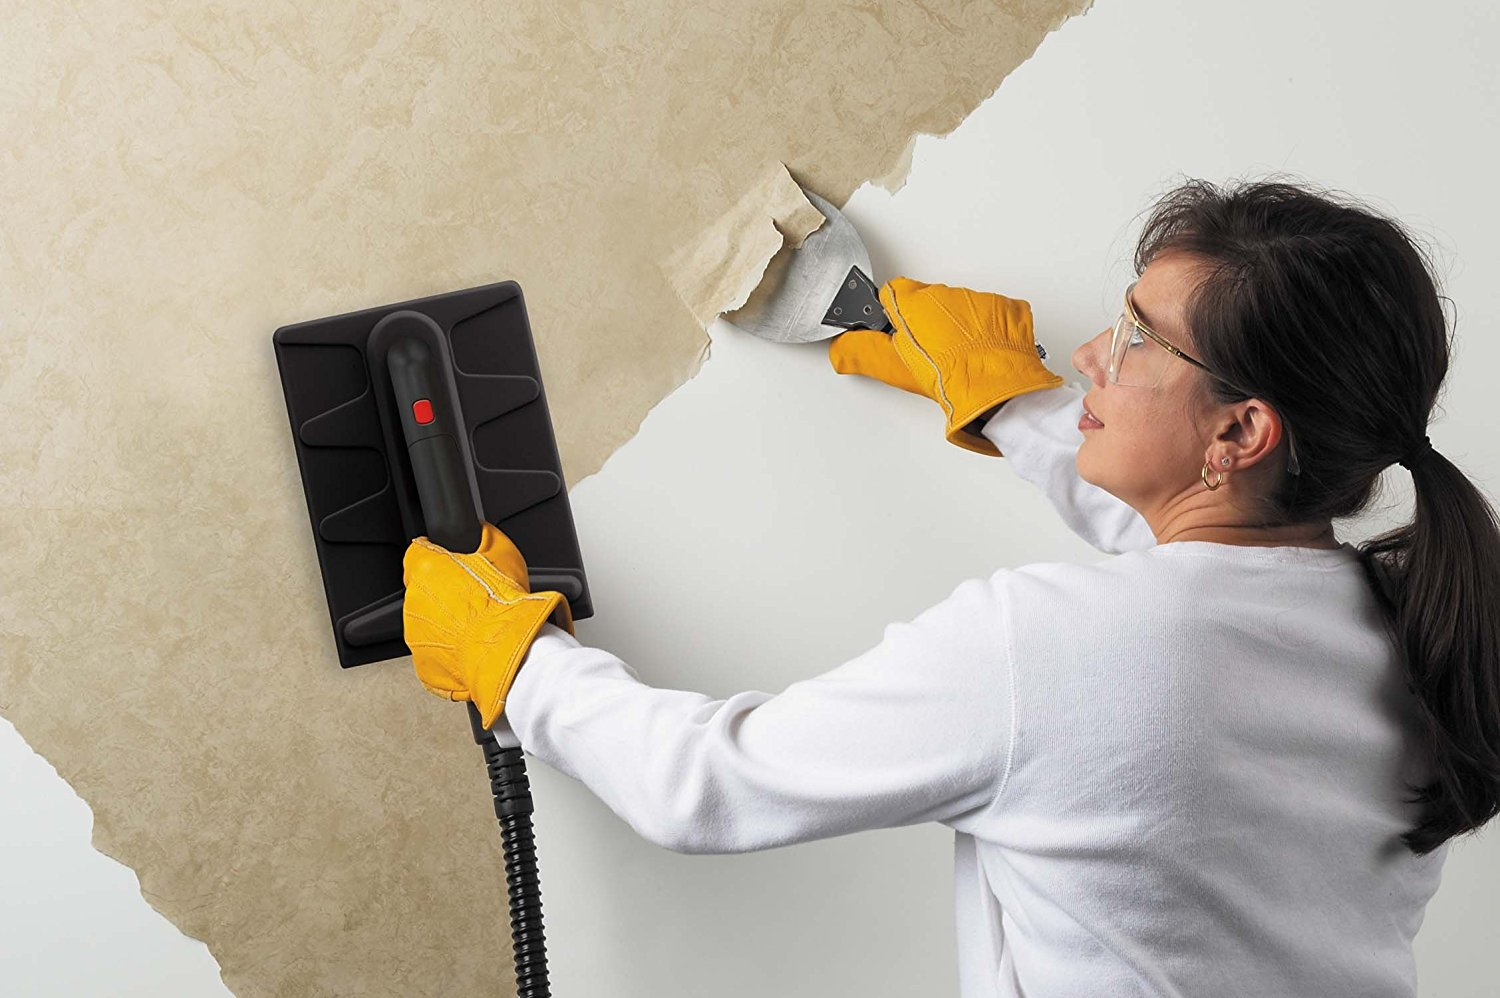 How To Remove Wallpaper From Walls Easily